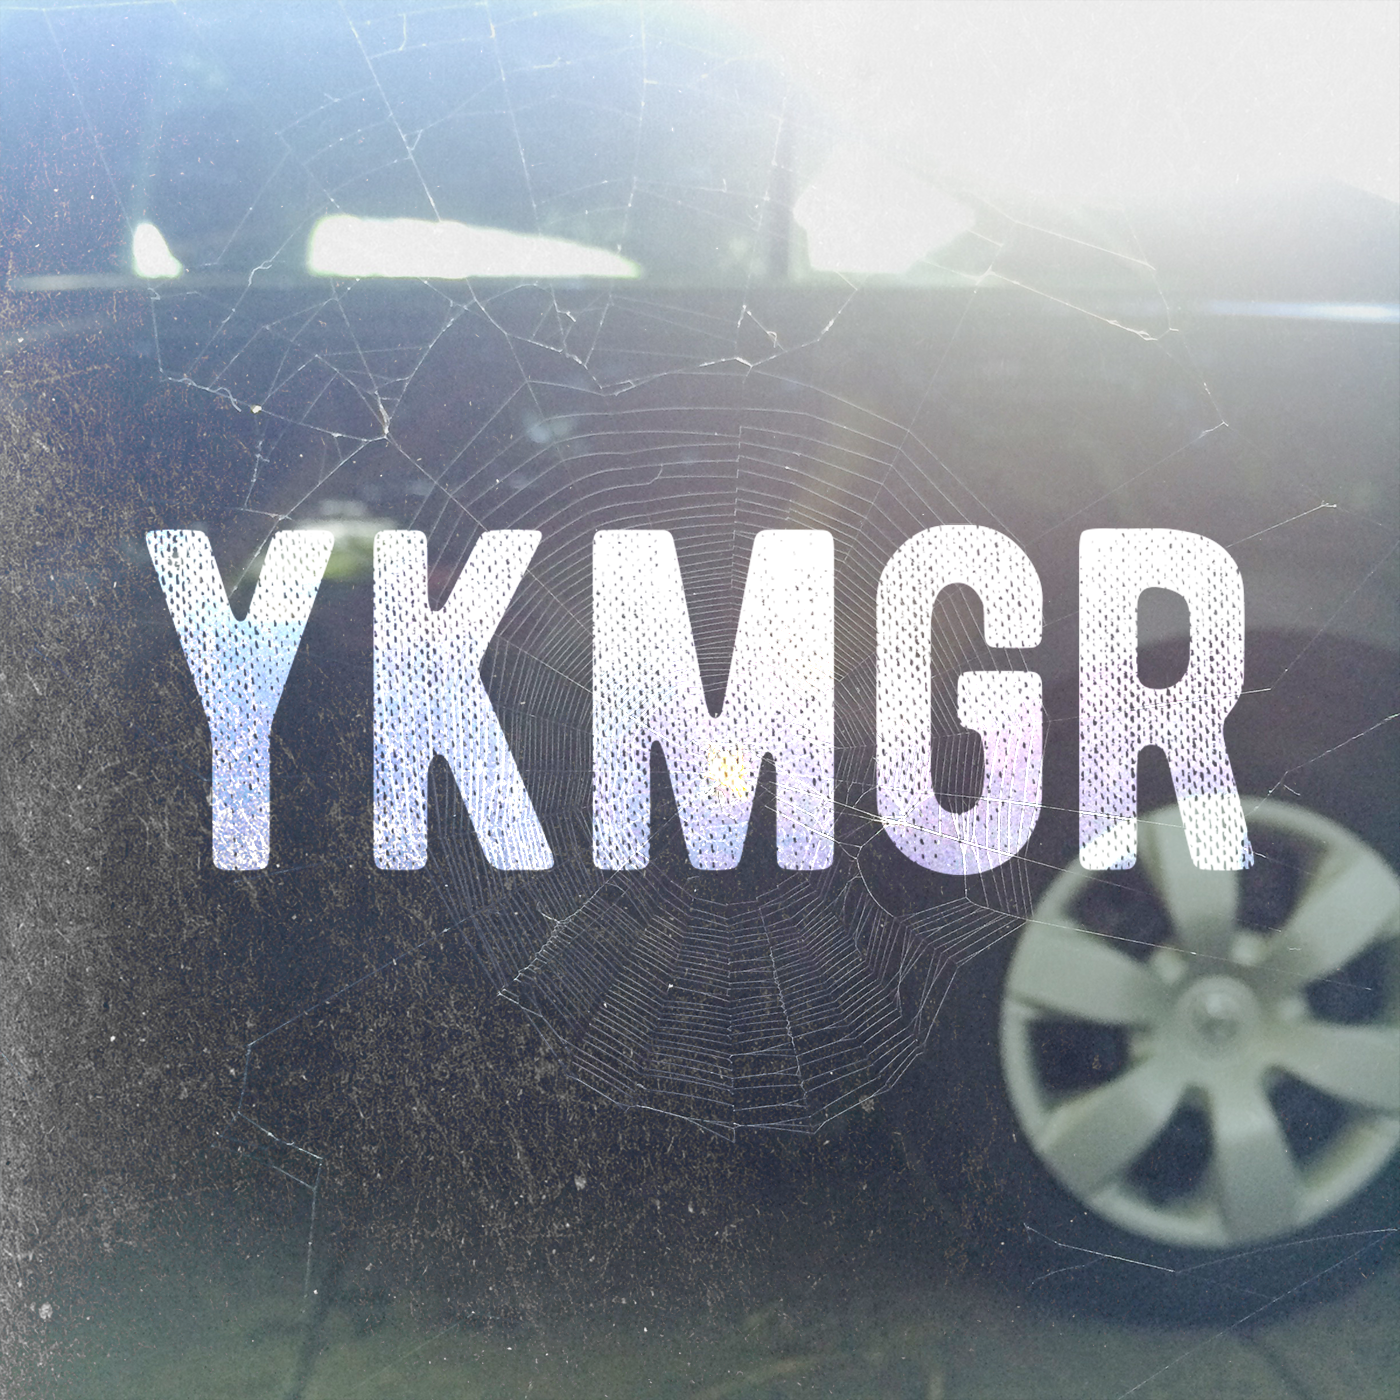 YKMGR 13.png